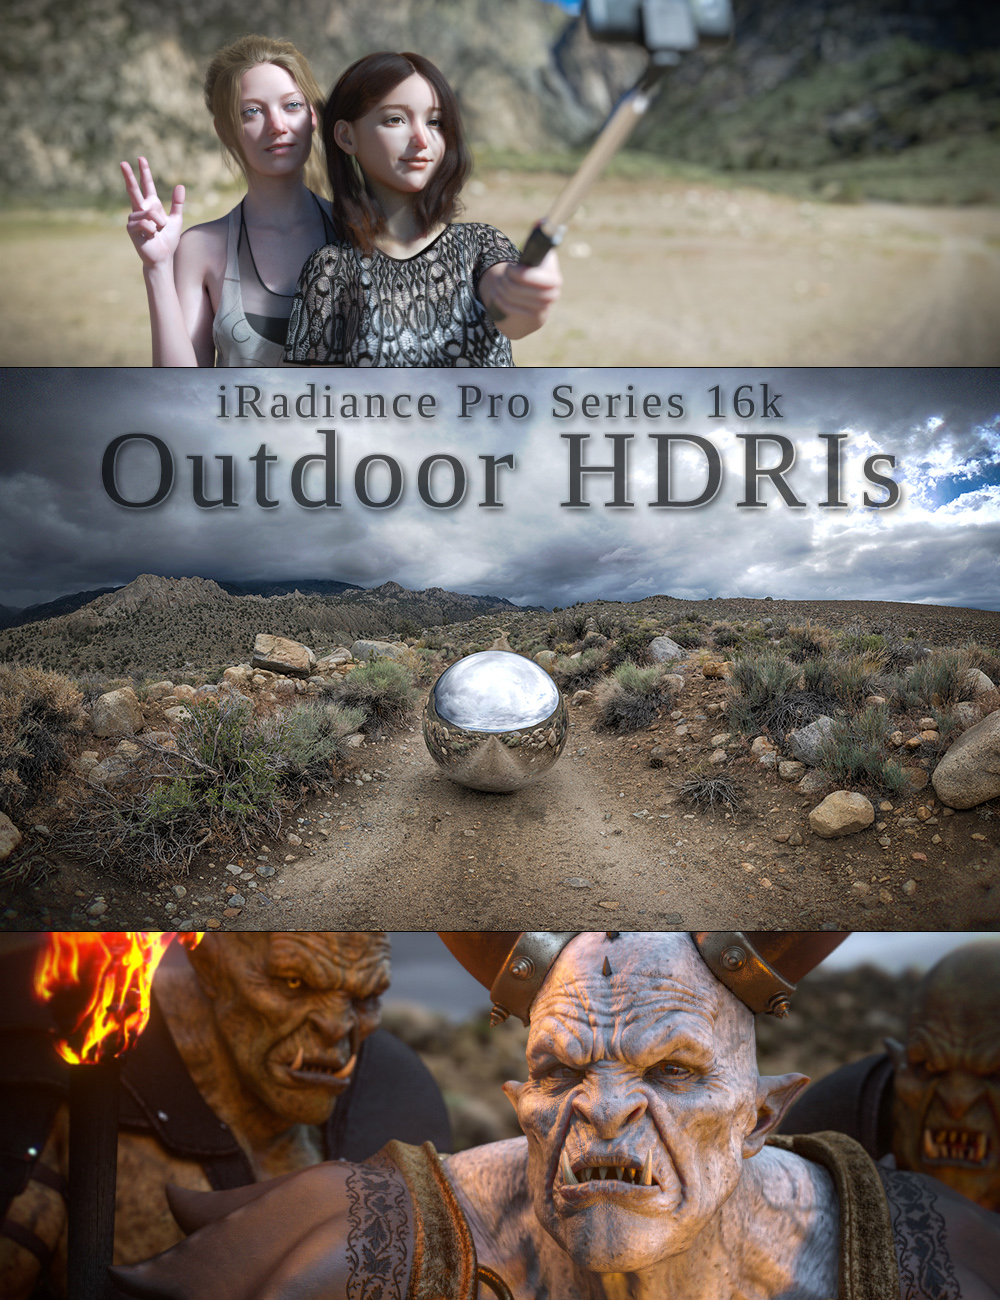 iRadiance Pro Series 16k HDRIs - Big Outdoors by: DimensionTheory, 3D Models by Daz 3D